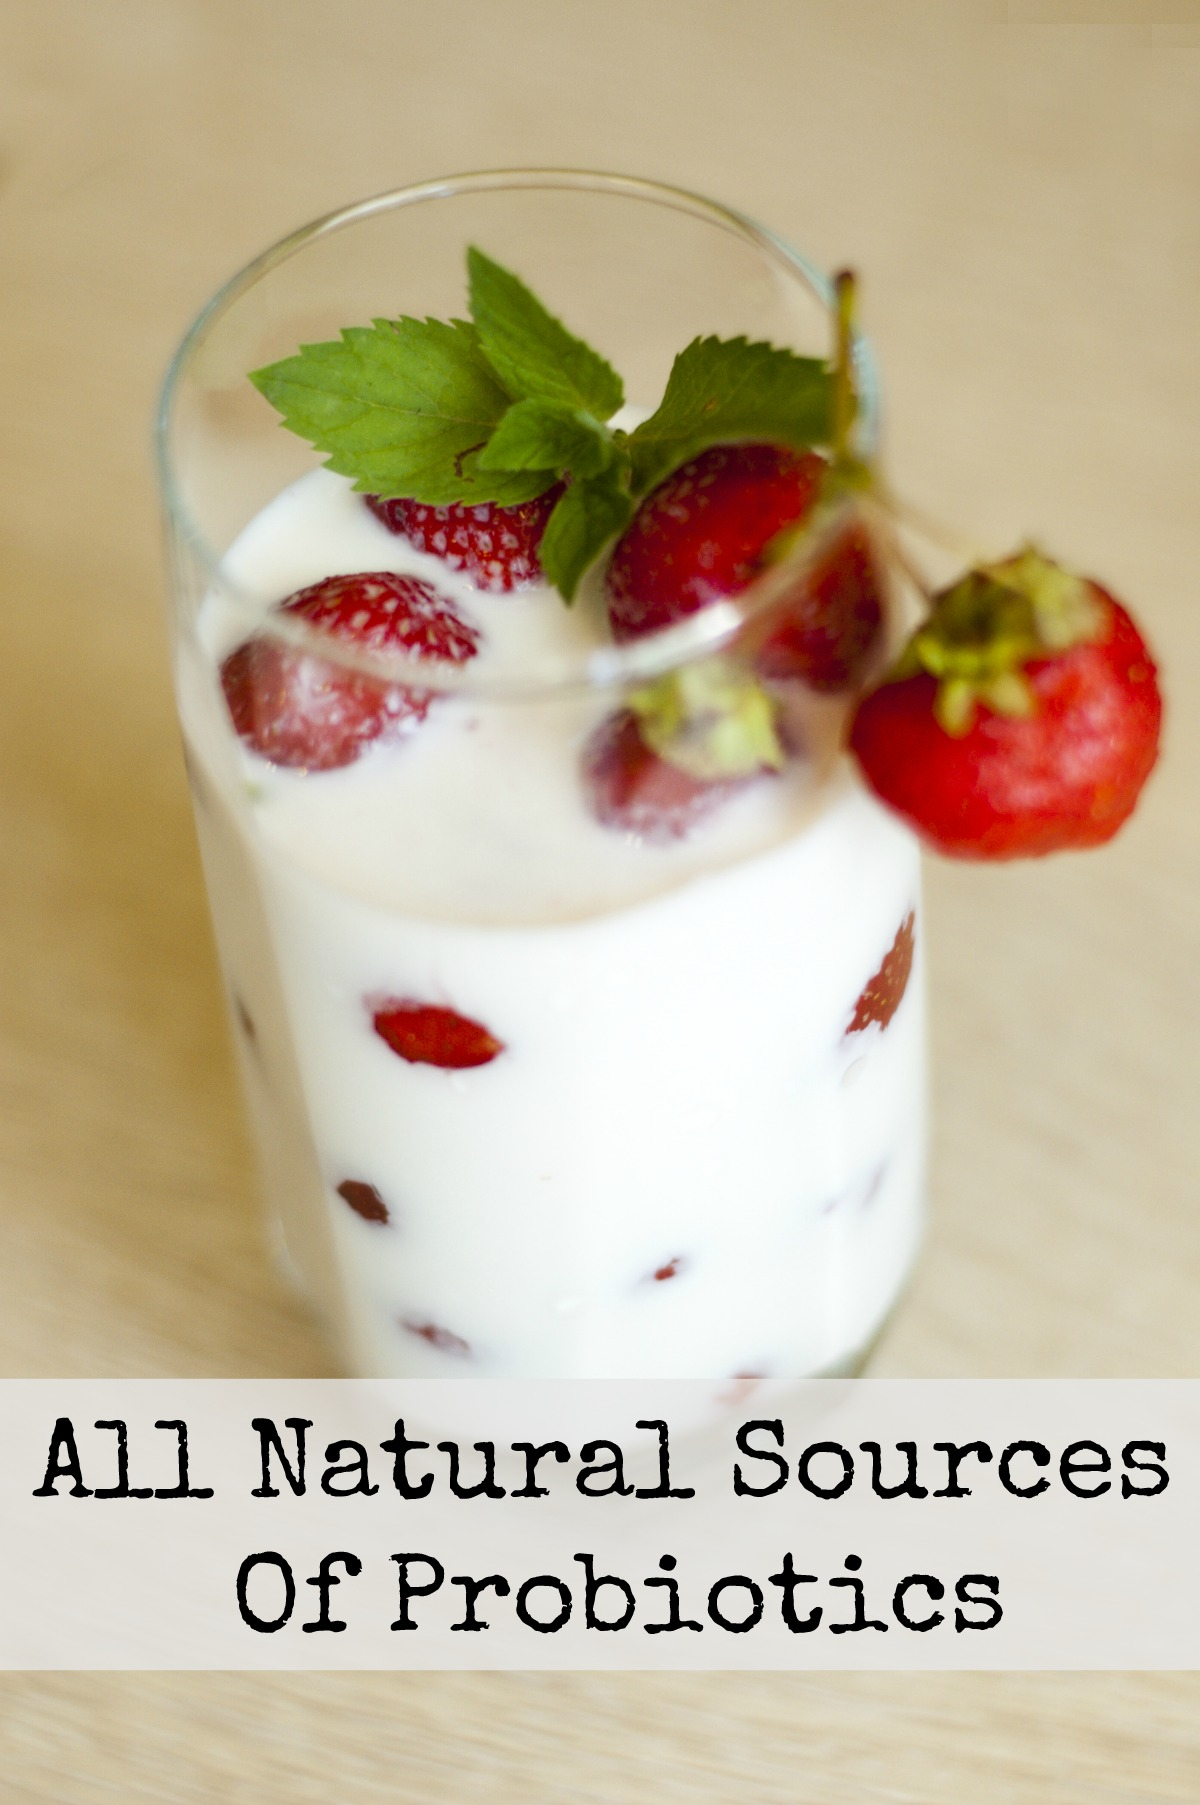 How To Get Natural Probiotics From Food